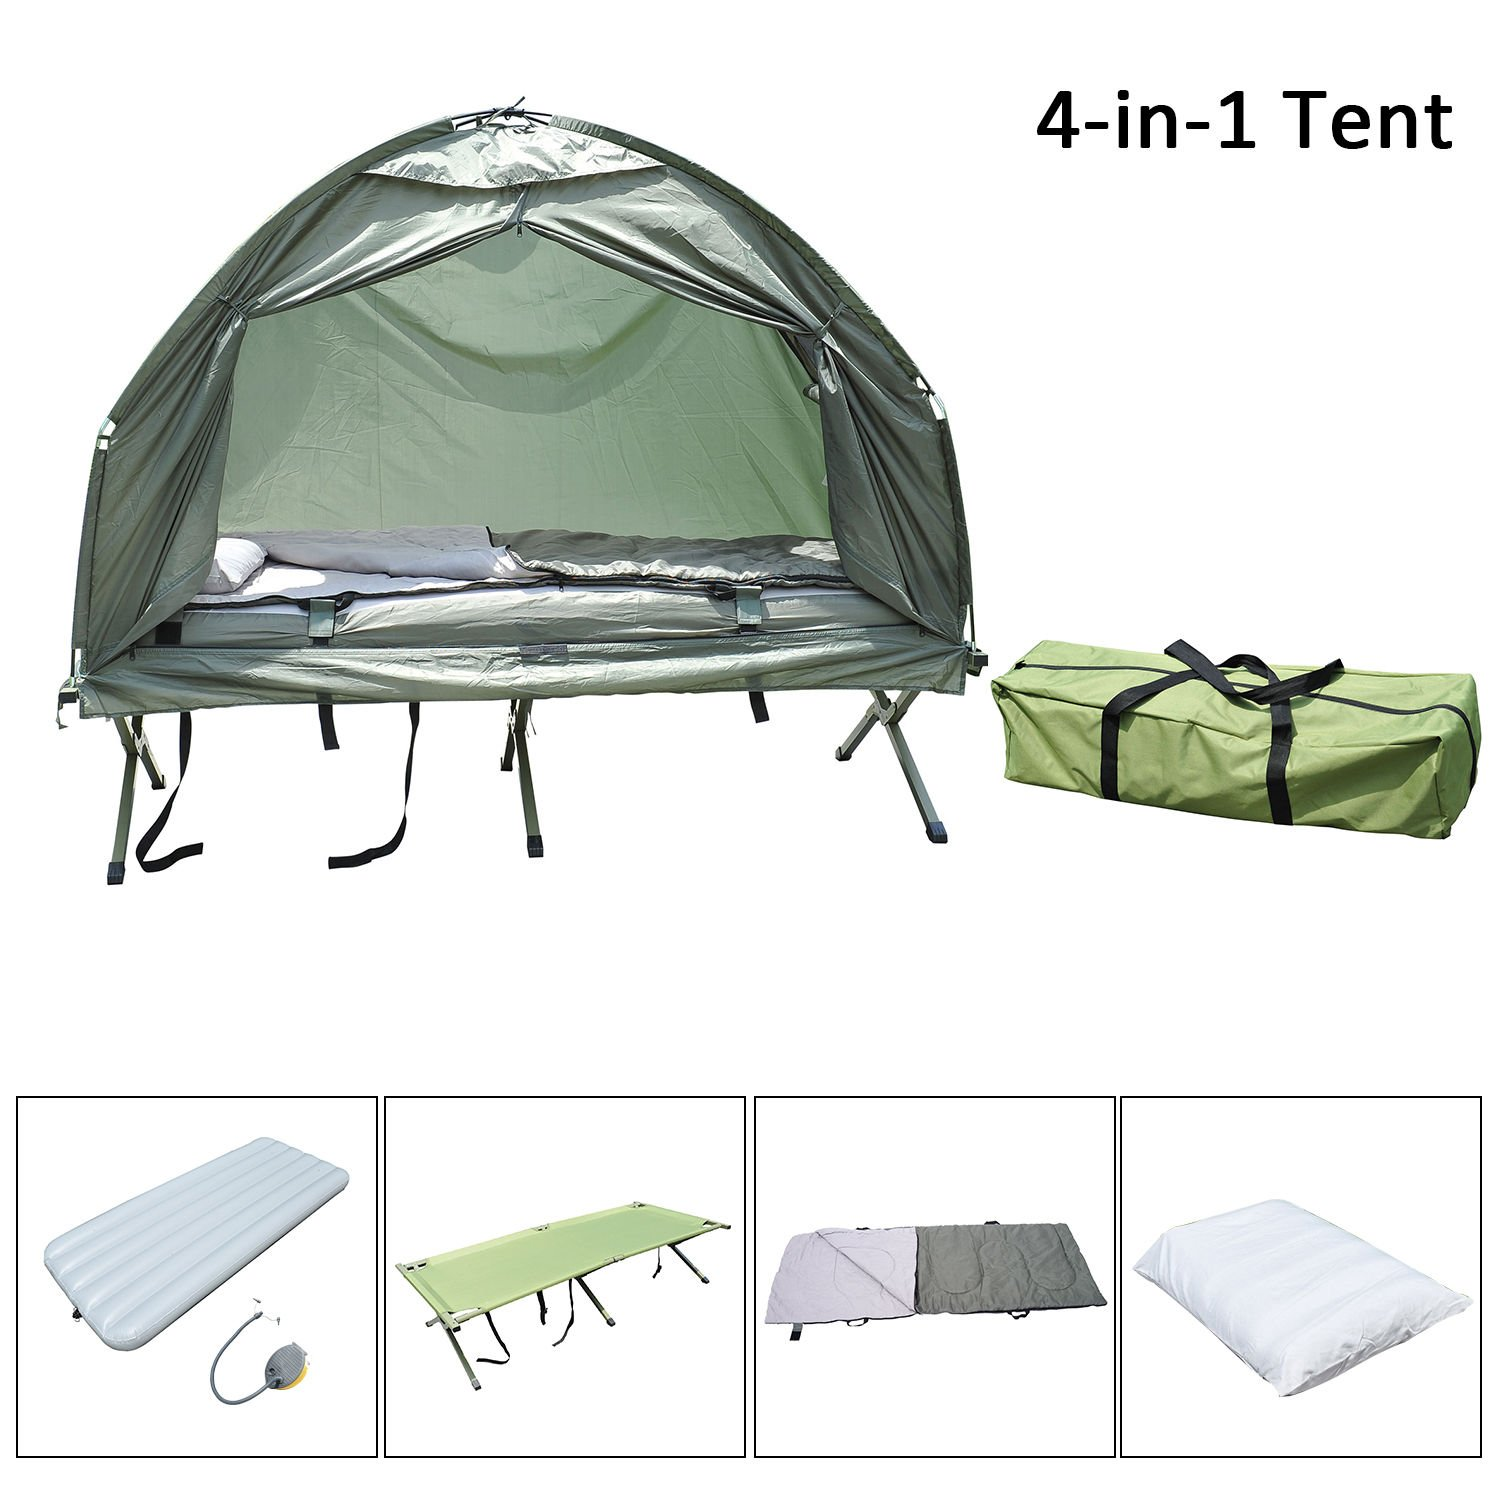 227358189c9 Amazon.com : Outsunny Compact Portable Pop-Up Tent/Camping Cot with Air  Mattress and Sleeping Bag : Garden & Outdoor